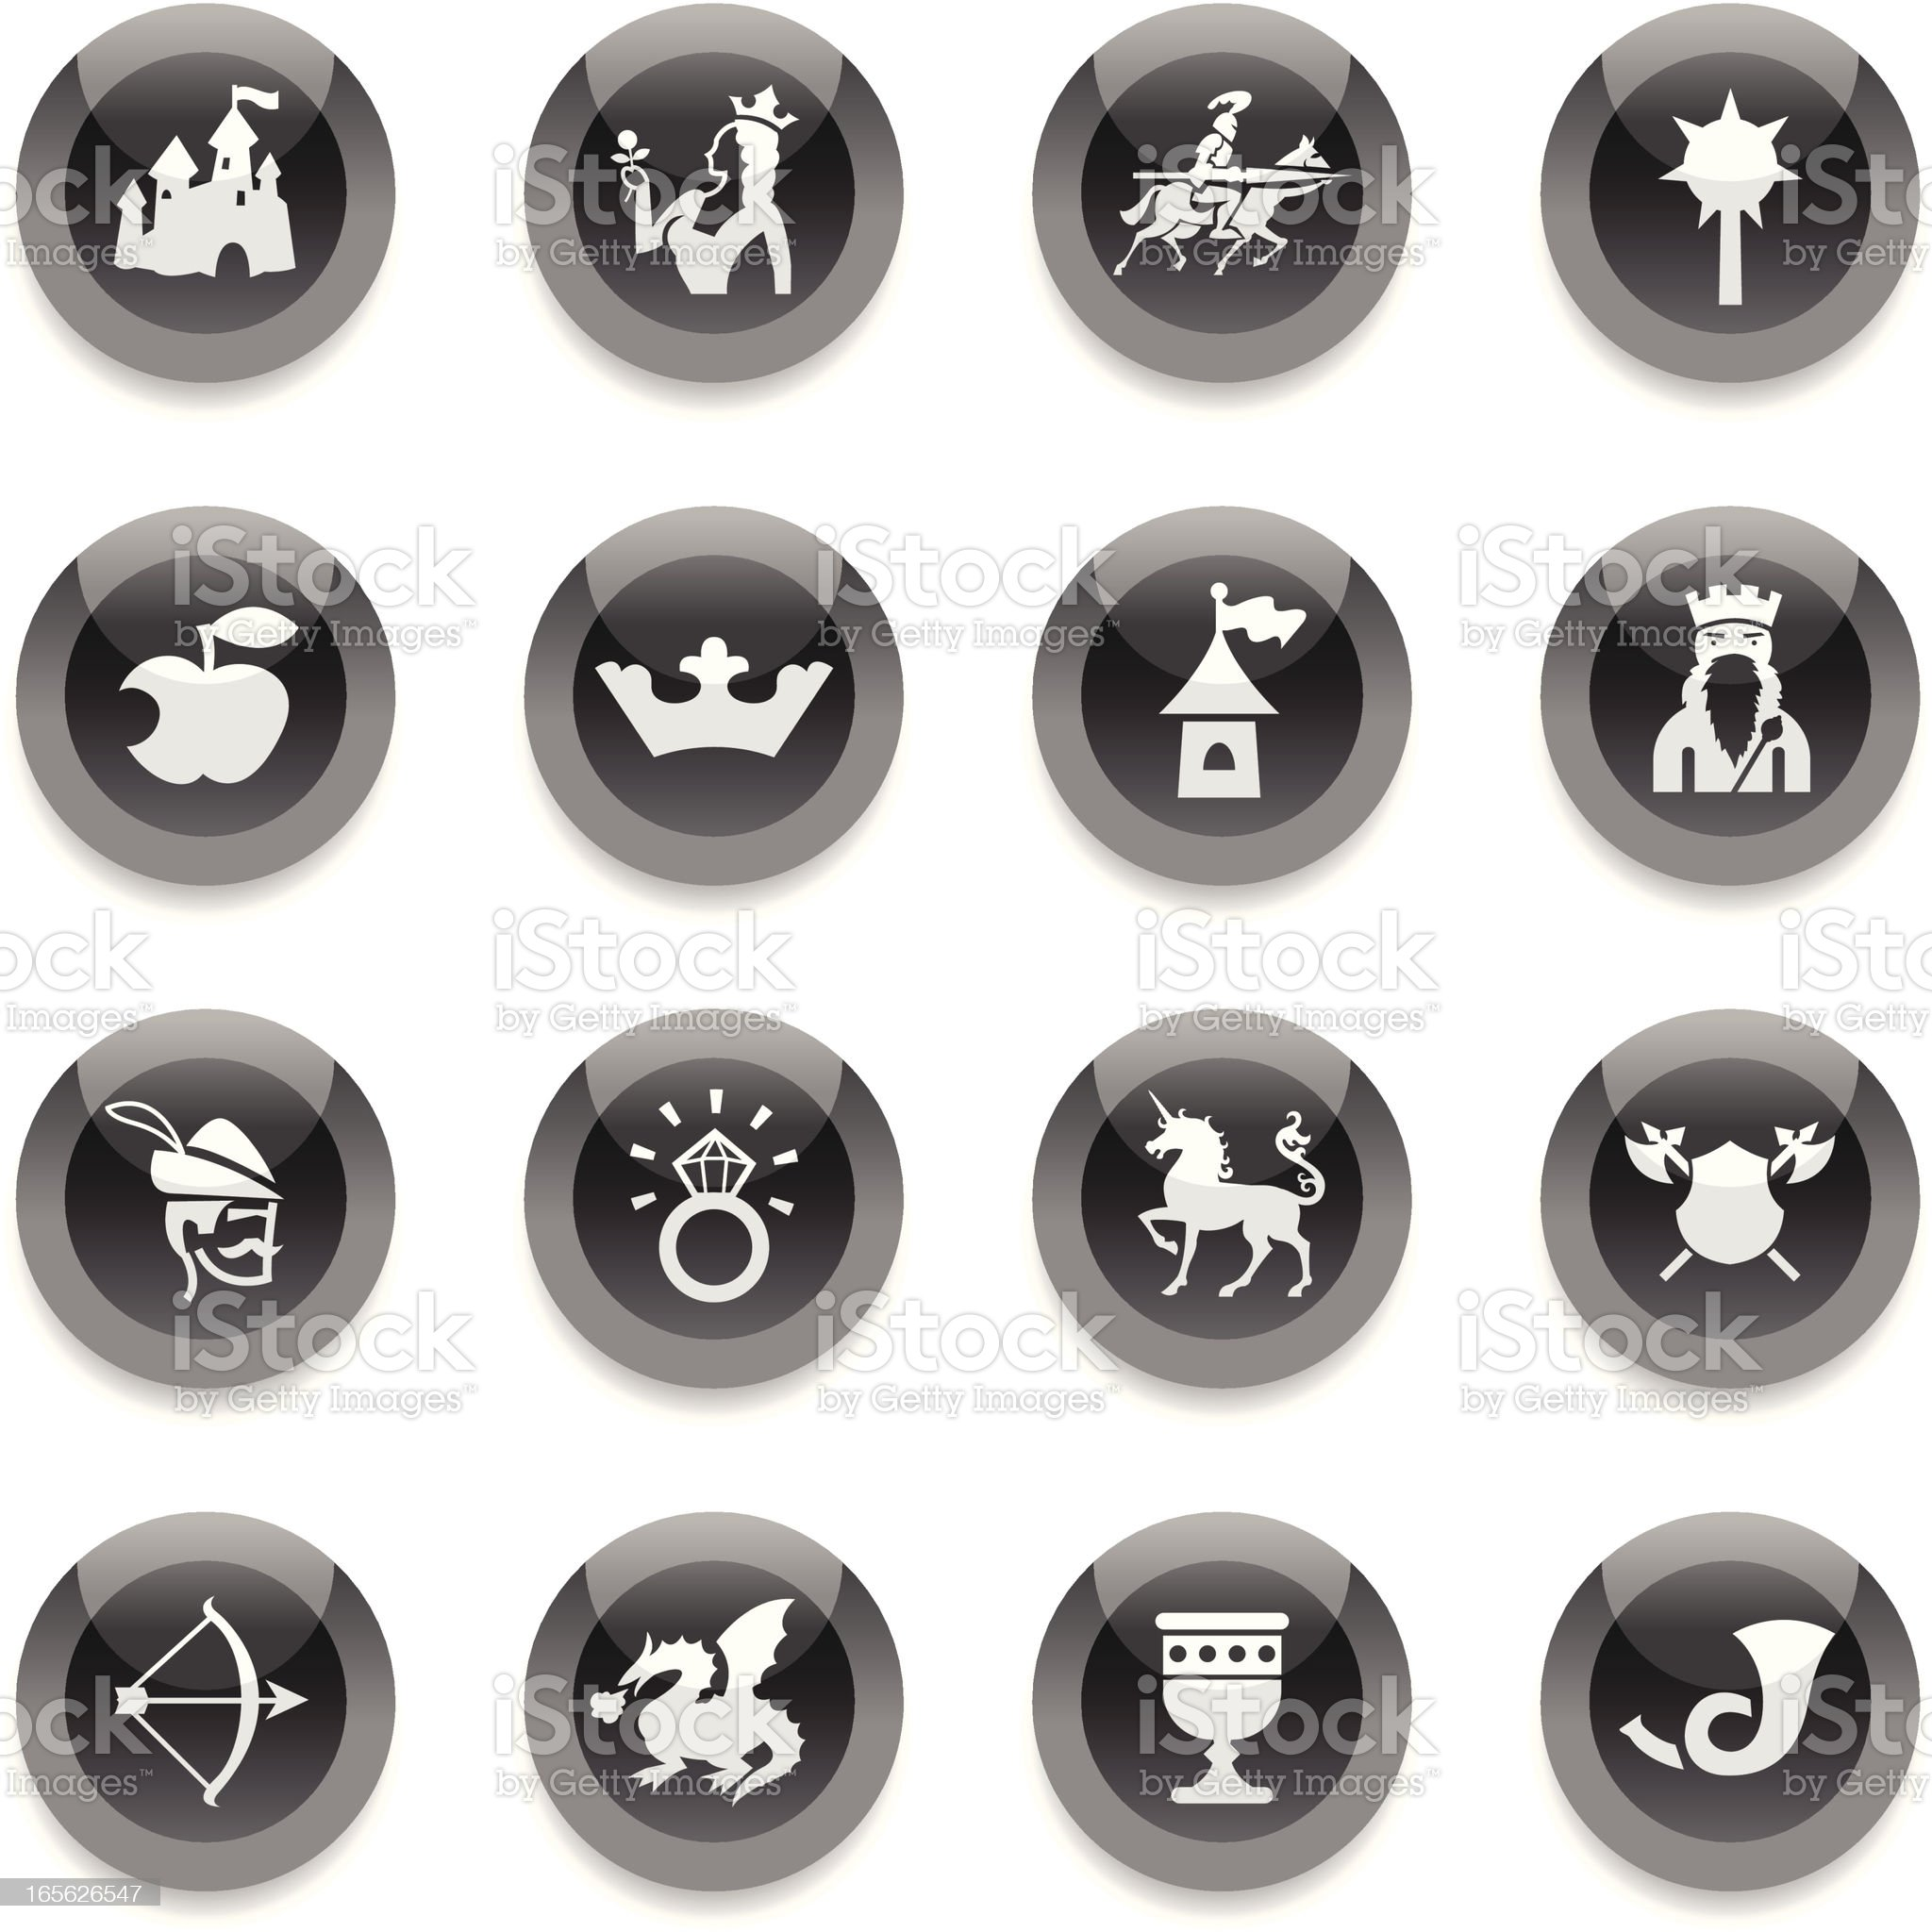 Black Round Icons - Medieval Fairytale royalty-free stock vector art